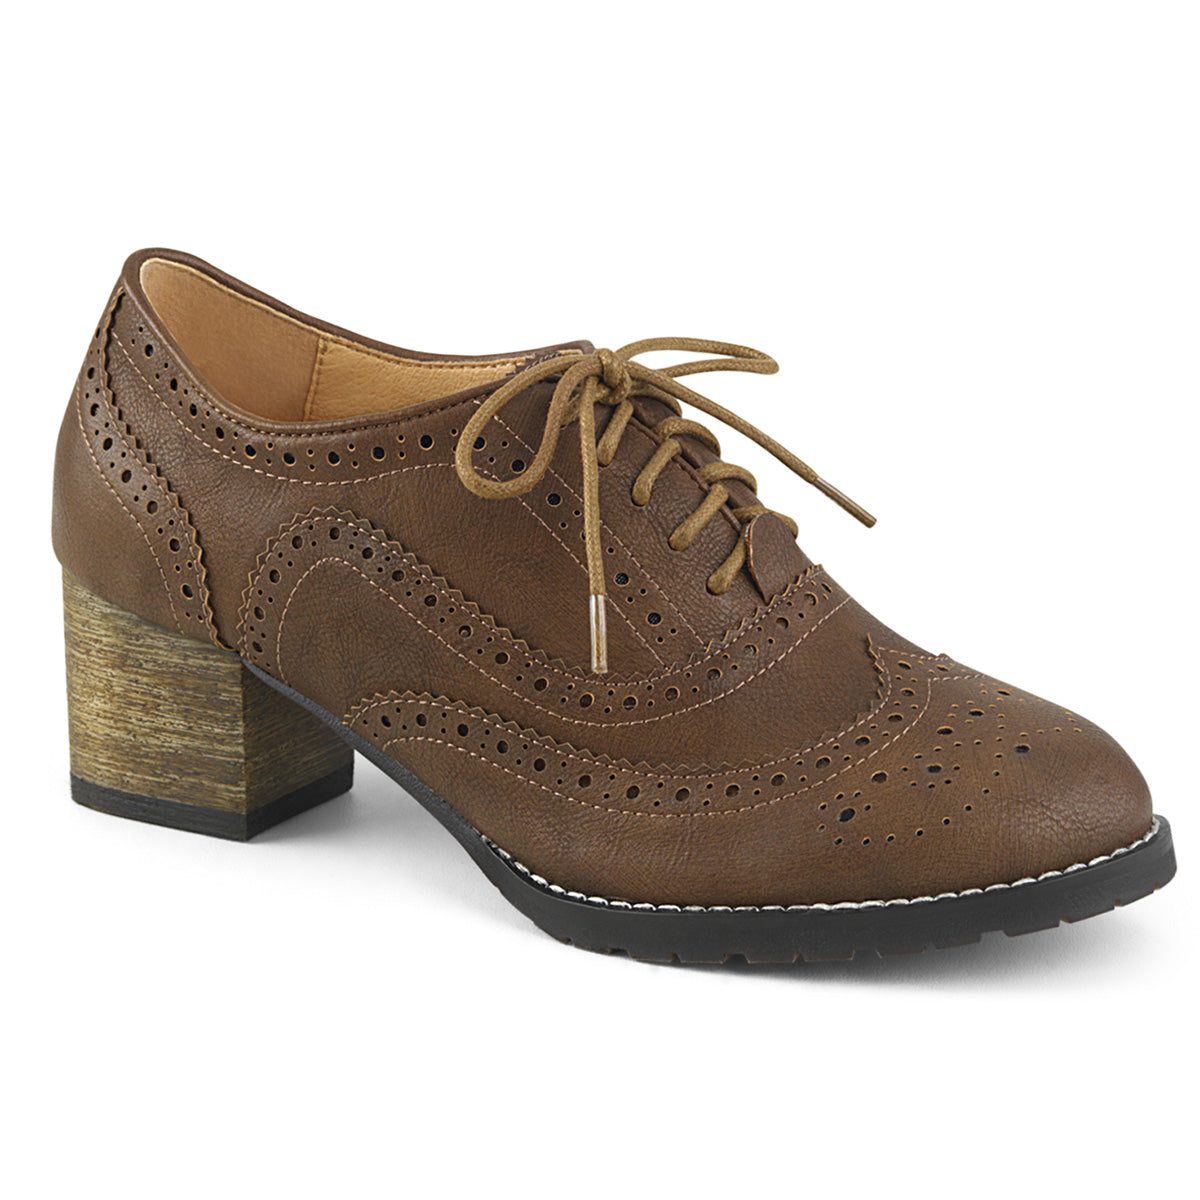 "2"" Block Heel Spectator Oxford"